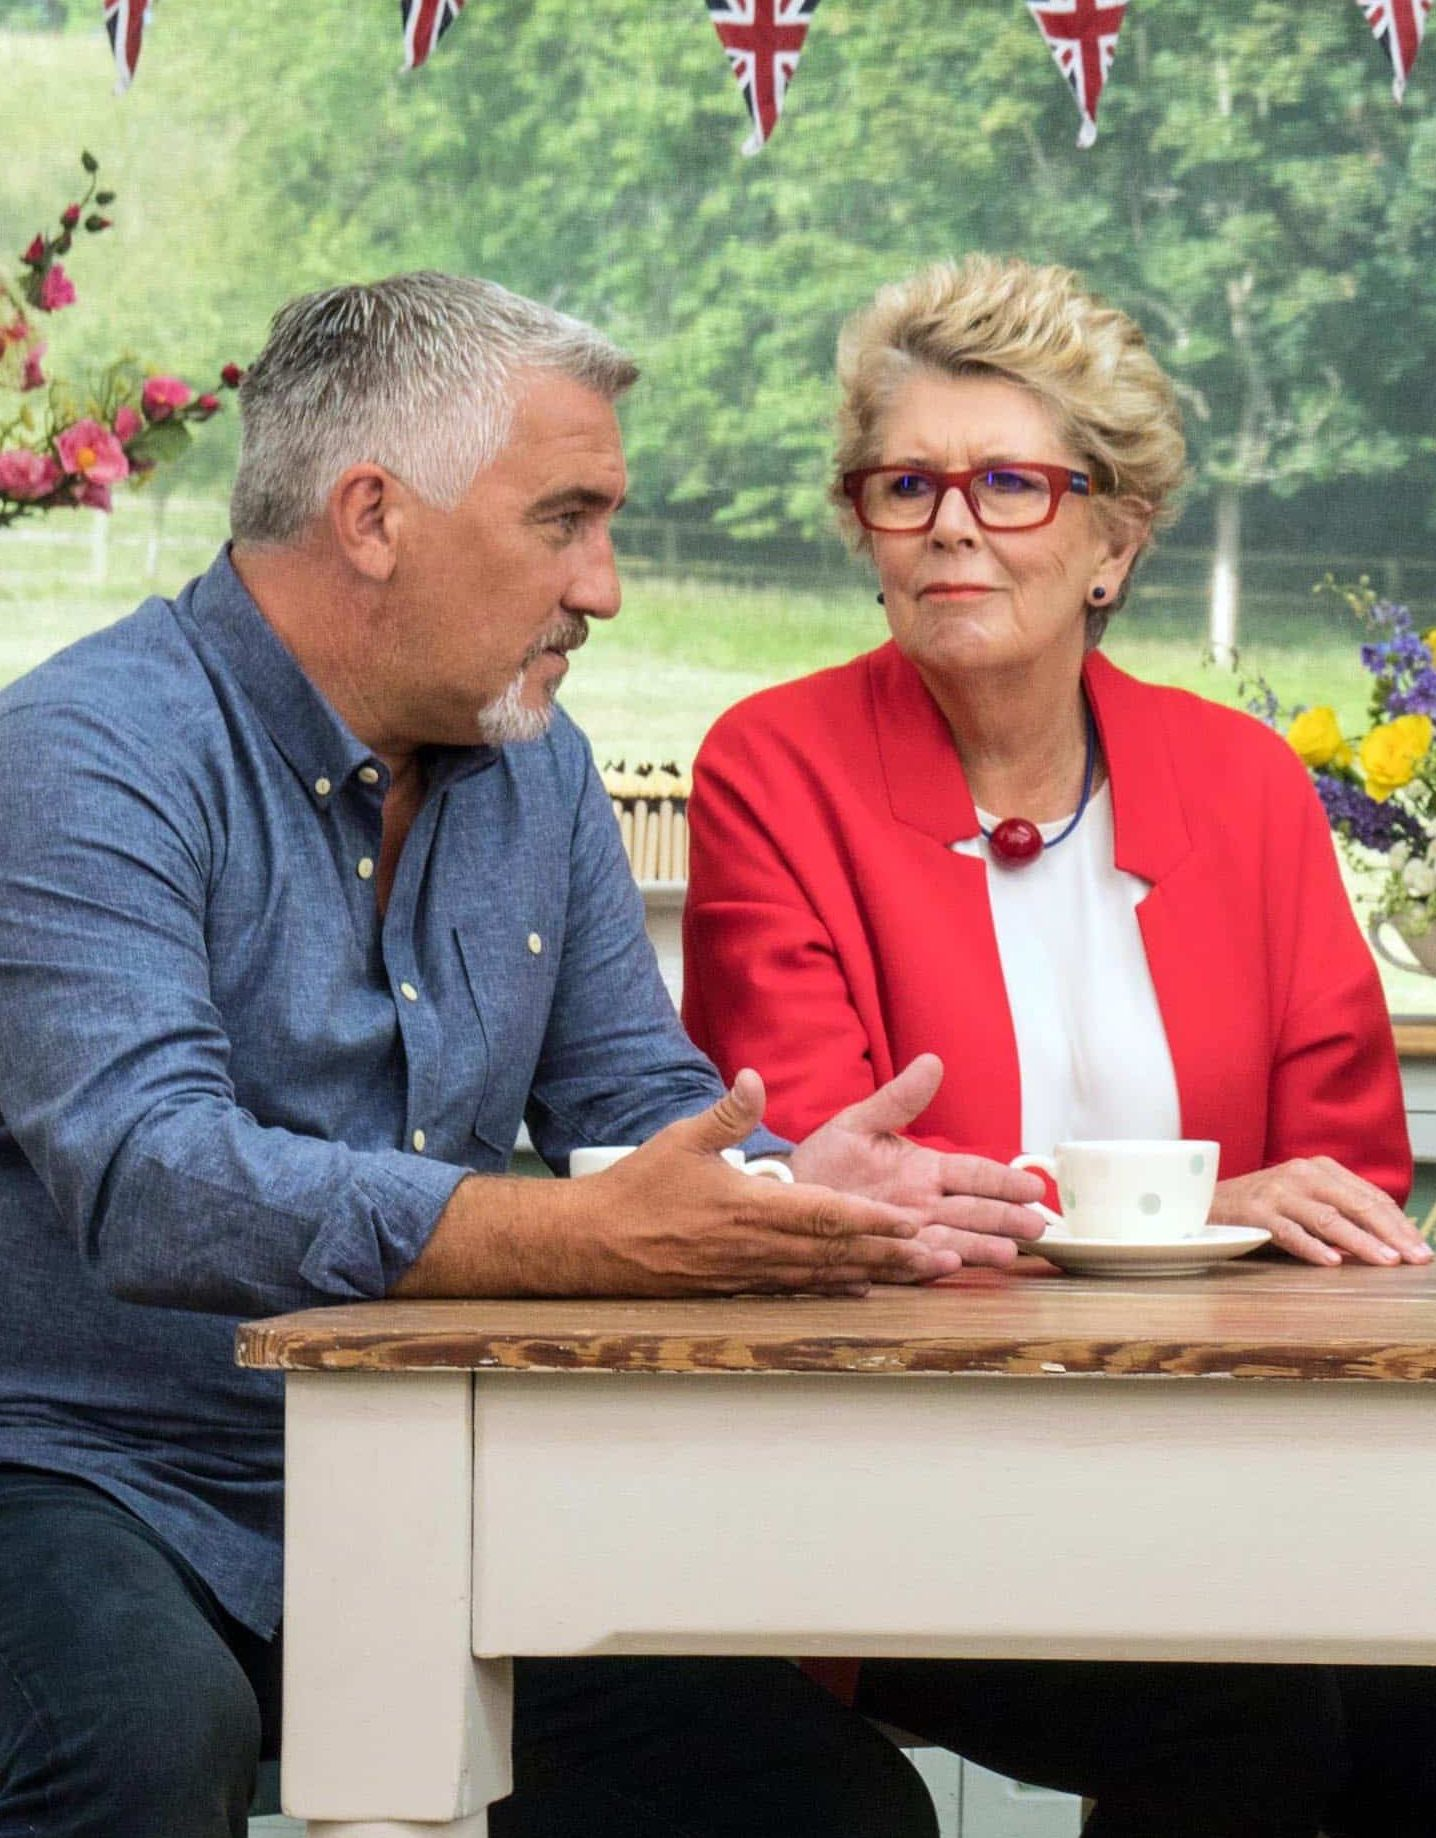 image 26 Things You Didn't Know About Bake Off's Prue Leith